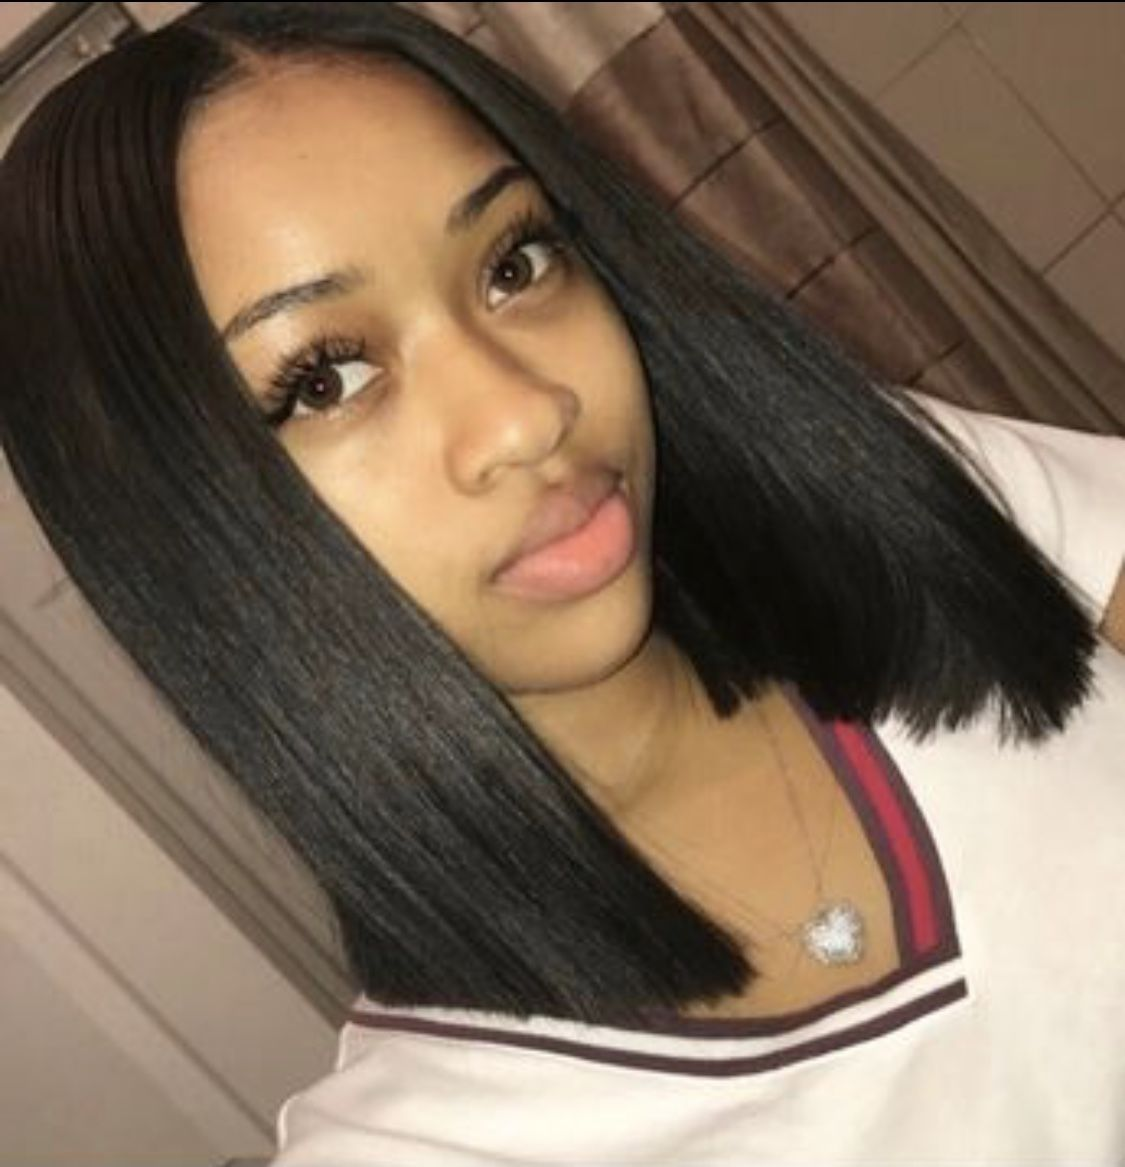 Sew In Weave Hairstyles For Black Women Short Shoulder Length With Middle Part W Braided Hairstyles For Black Women Weave Hairstyles Sew In Weave Hairstyles